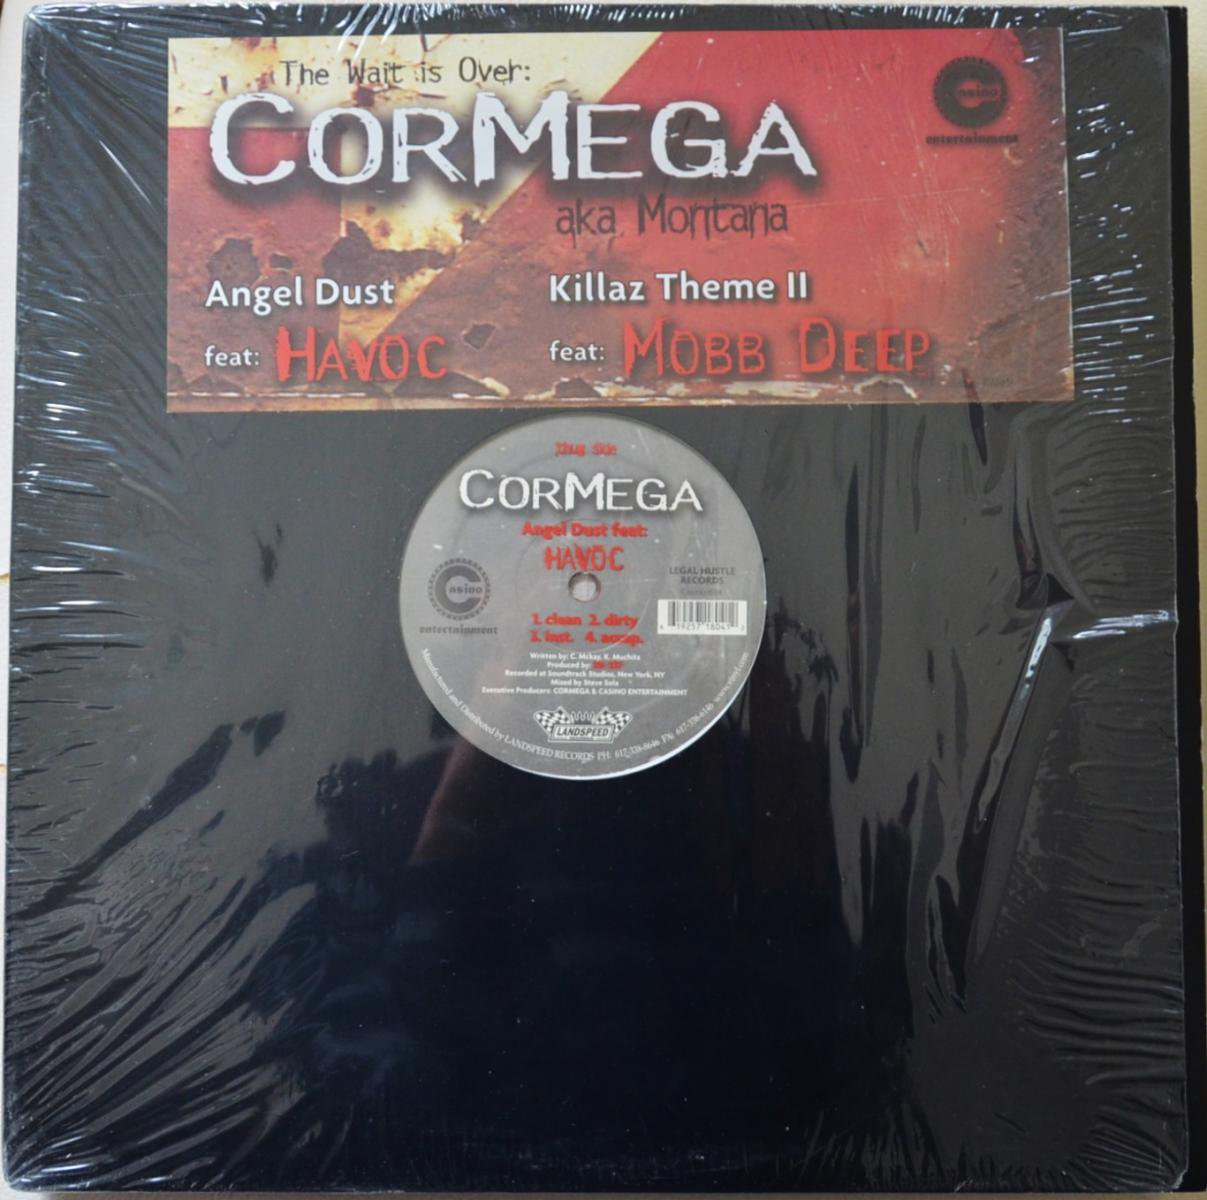 CORMEGA / ANGEL DUST (FEAT.HAVOC) / KILLAZ THEME II (FEAT.MOBB DEEP) (12